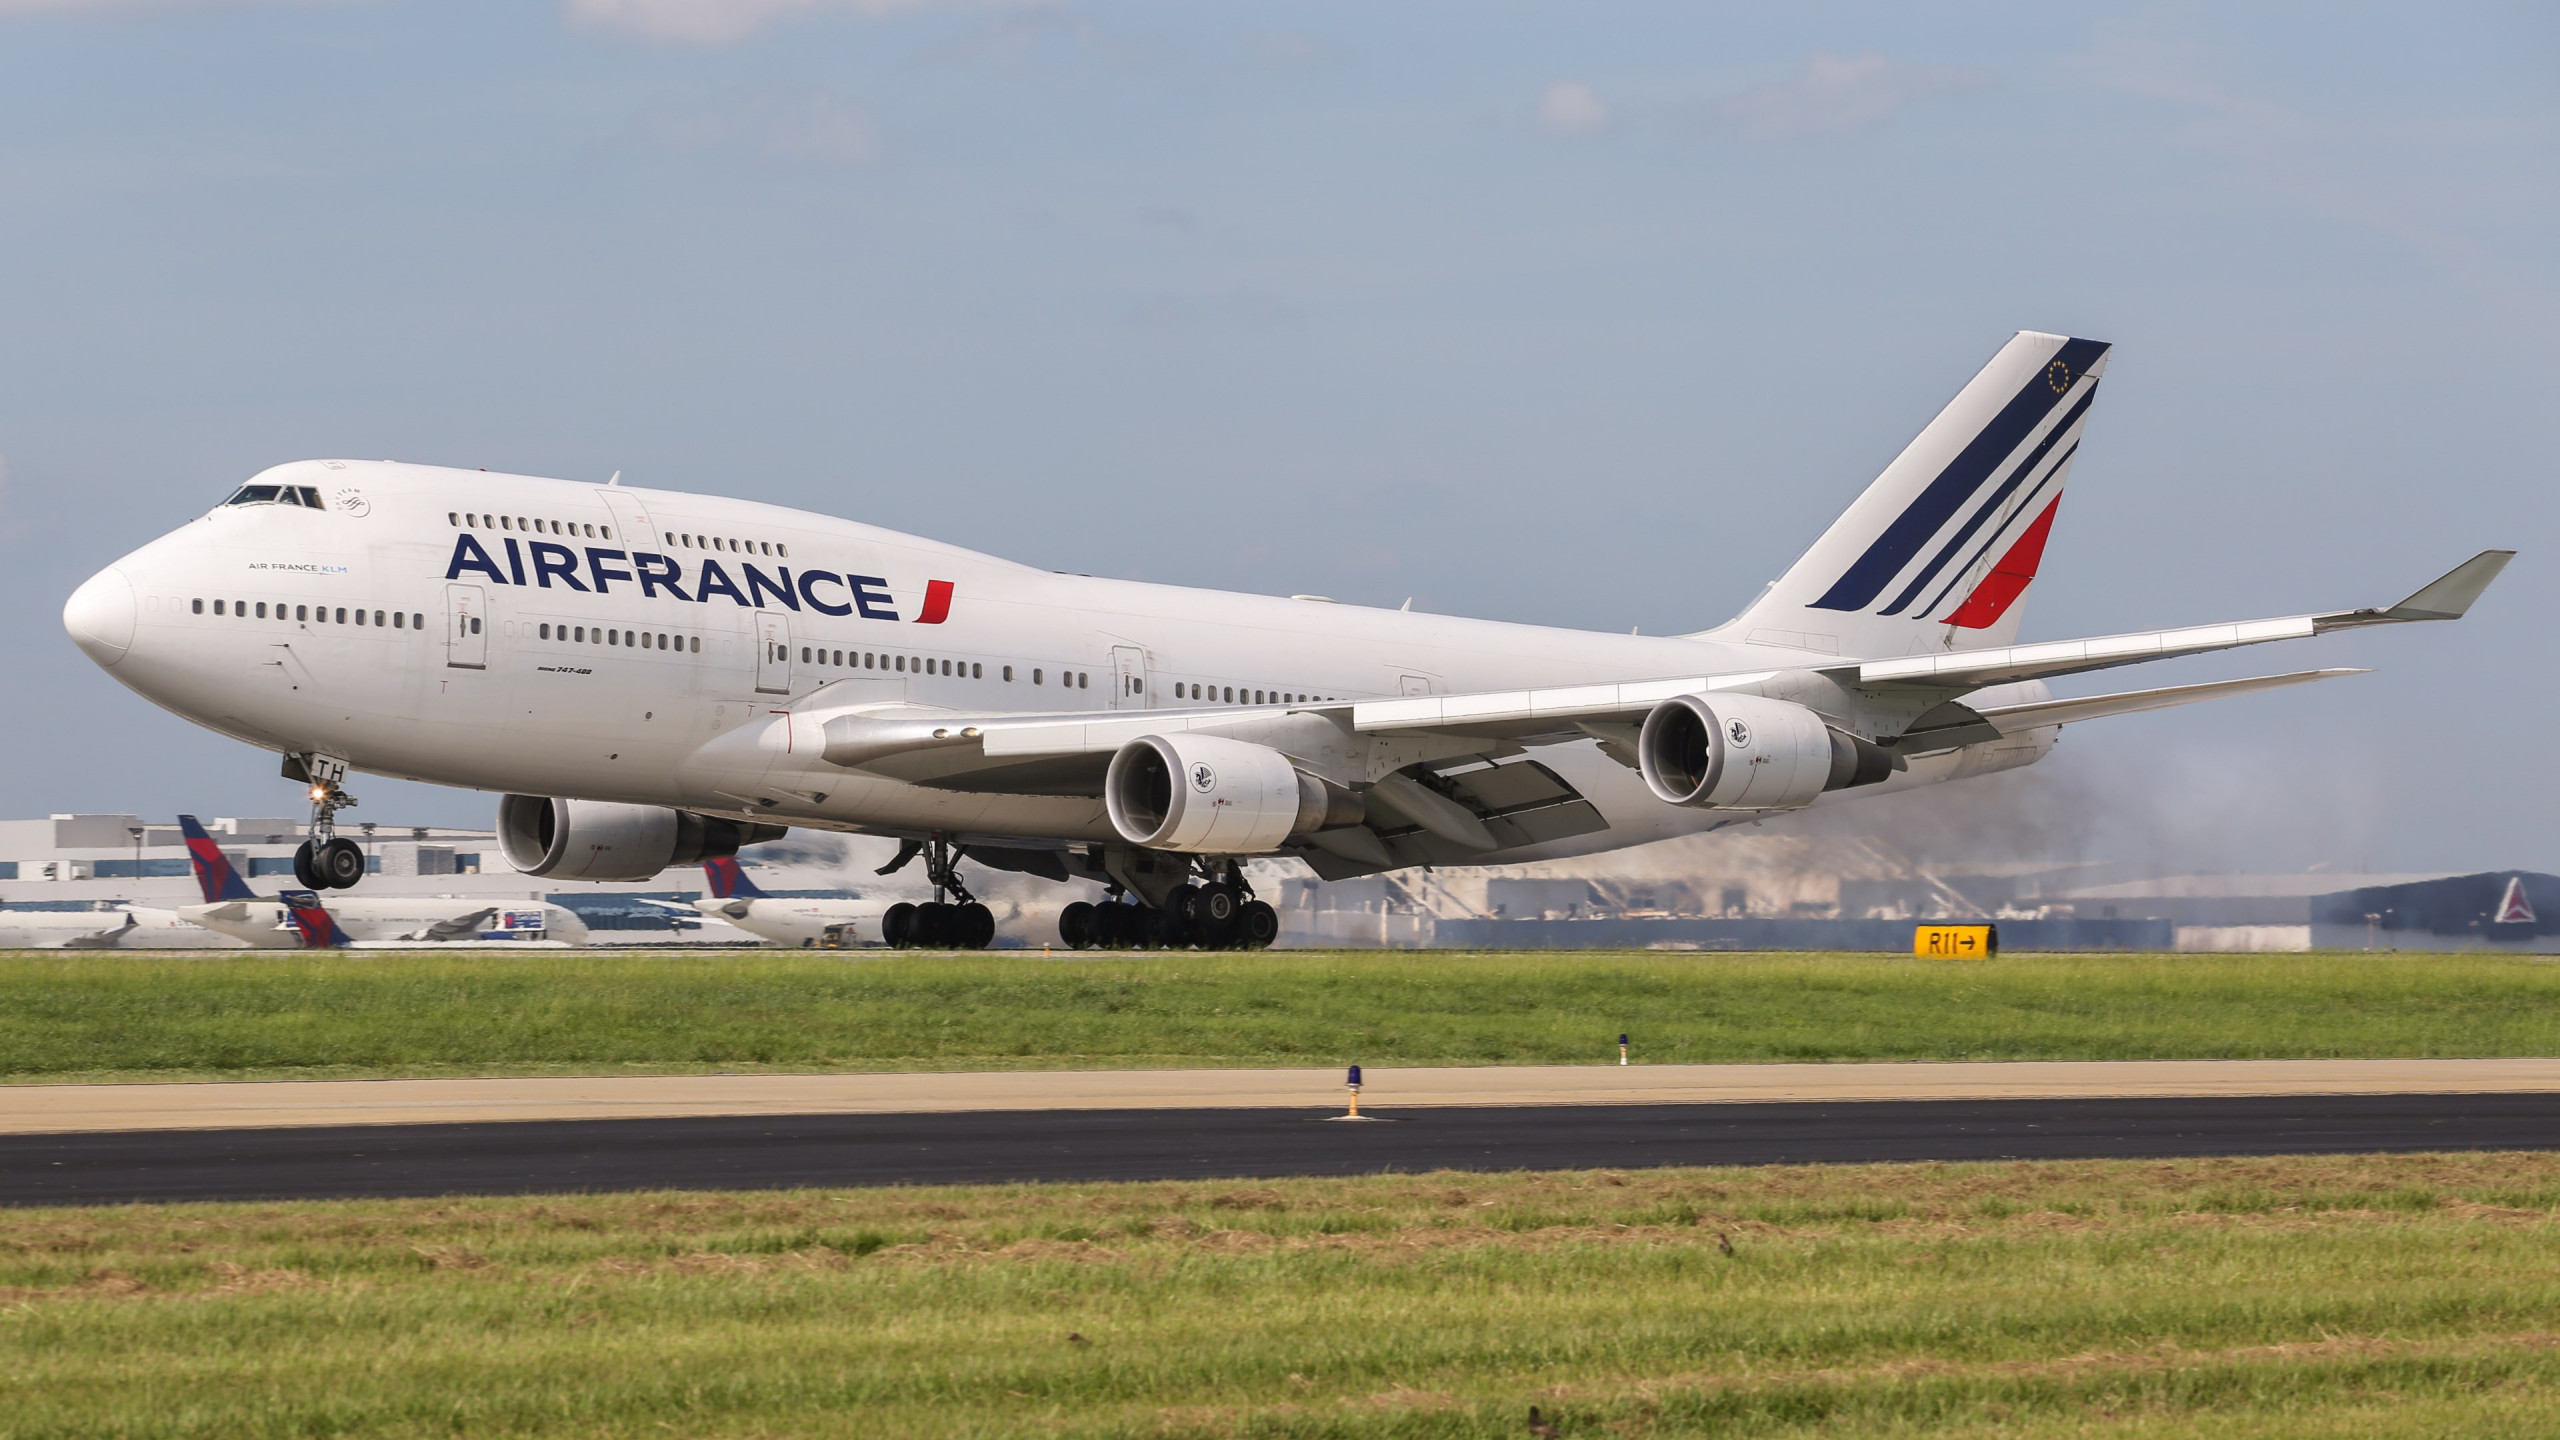 Air France Boeing 747 wallpaper 2560x1440